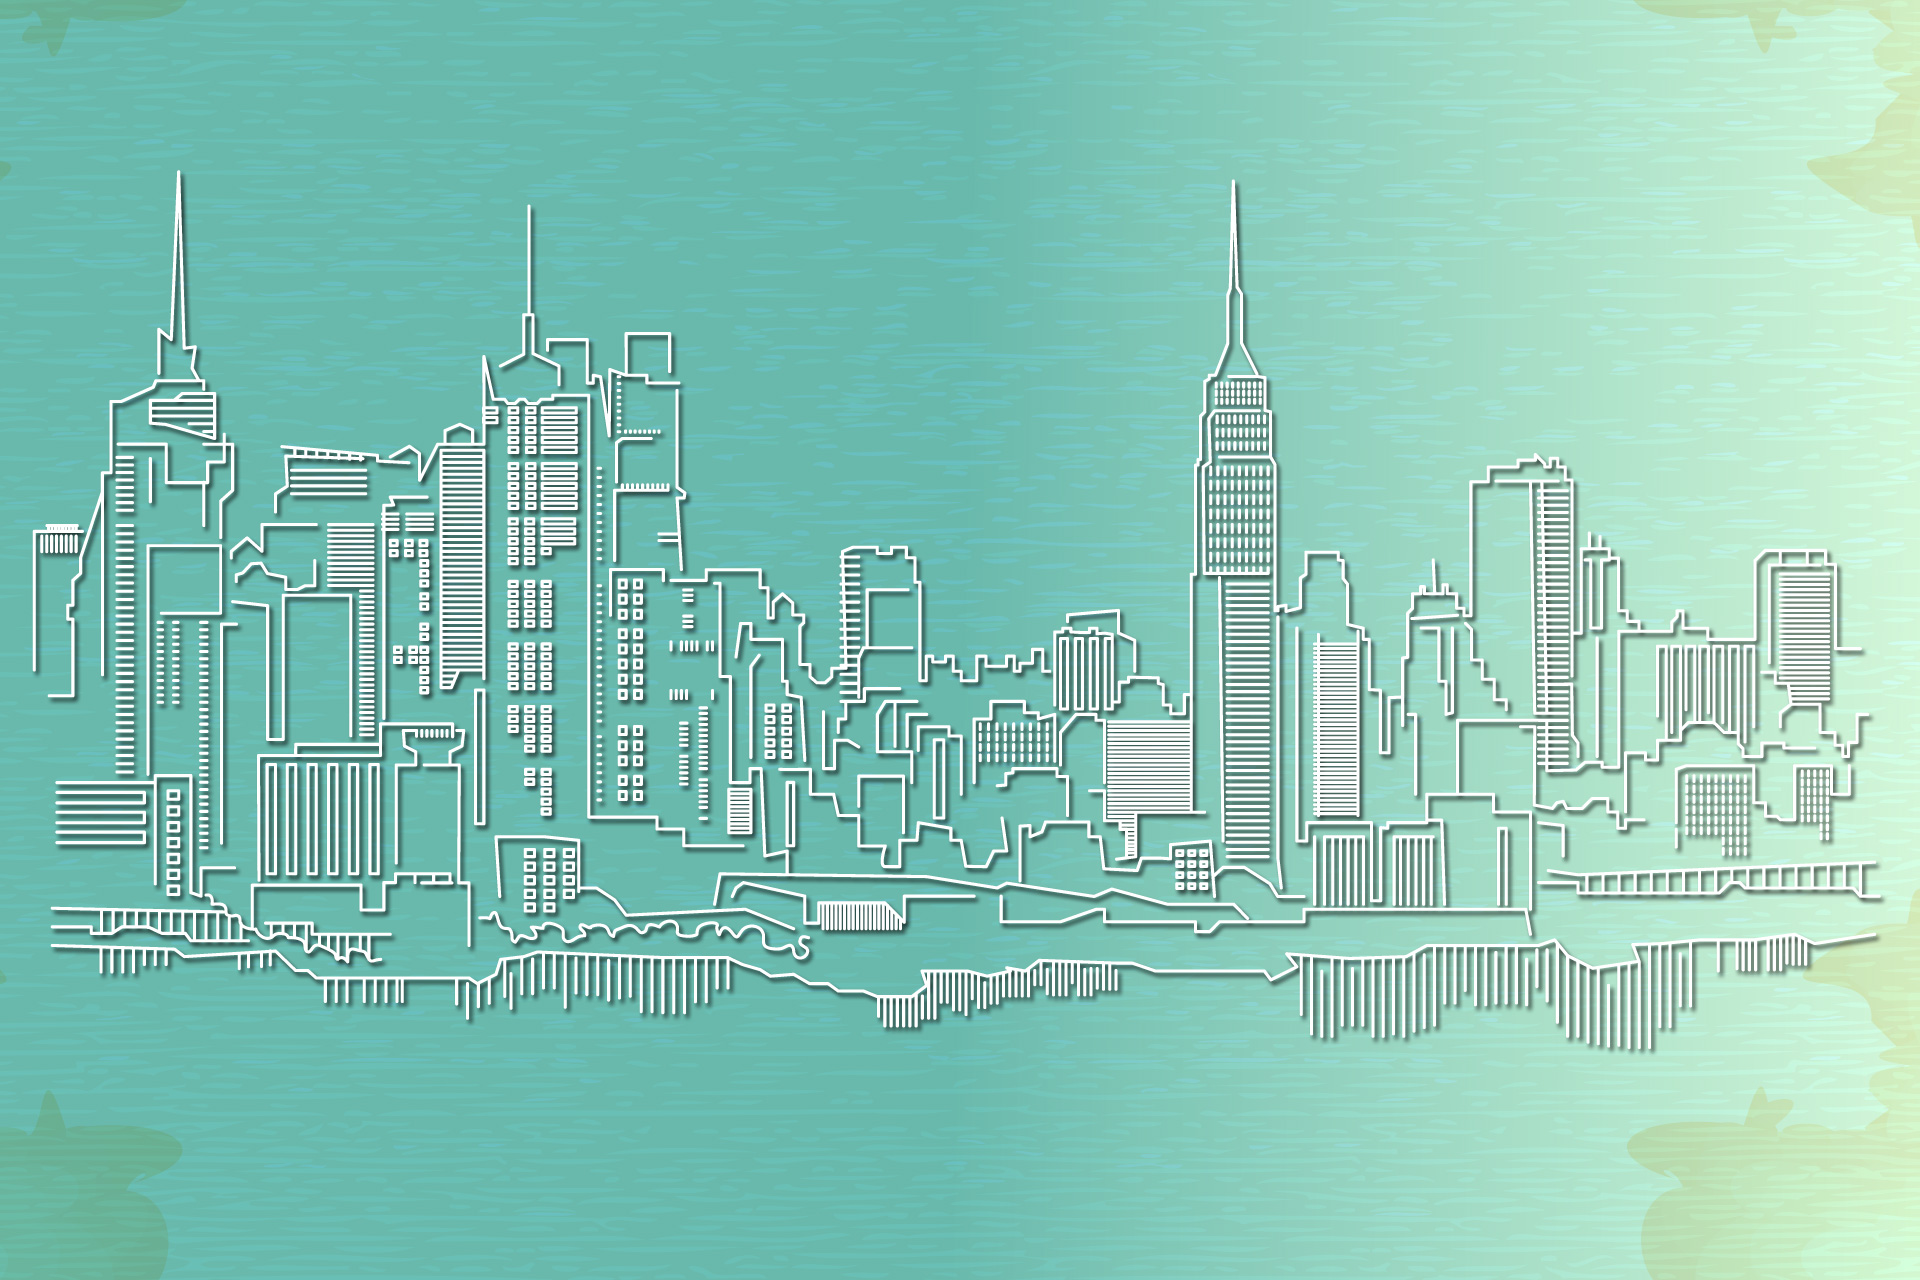 Free download high resolution image - free image free photo free stock image public domain picture -New York City skyline on paper